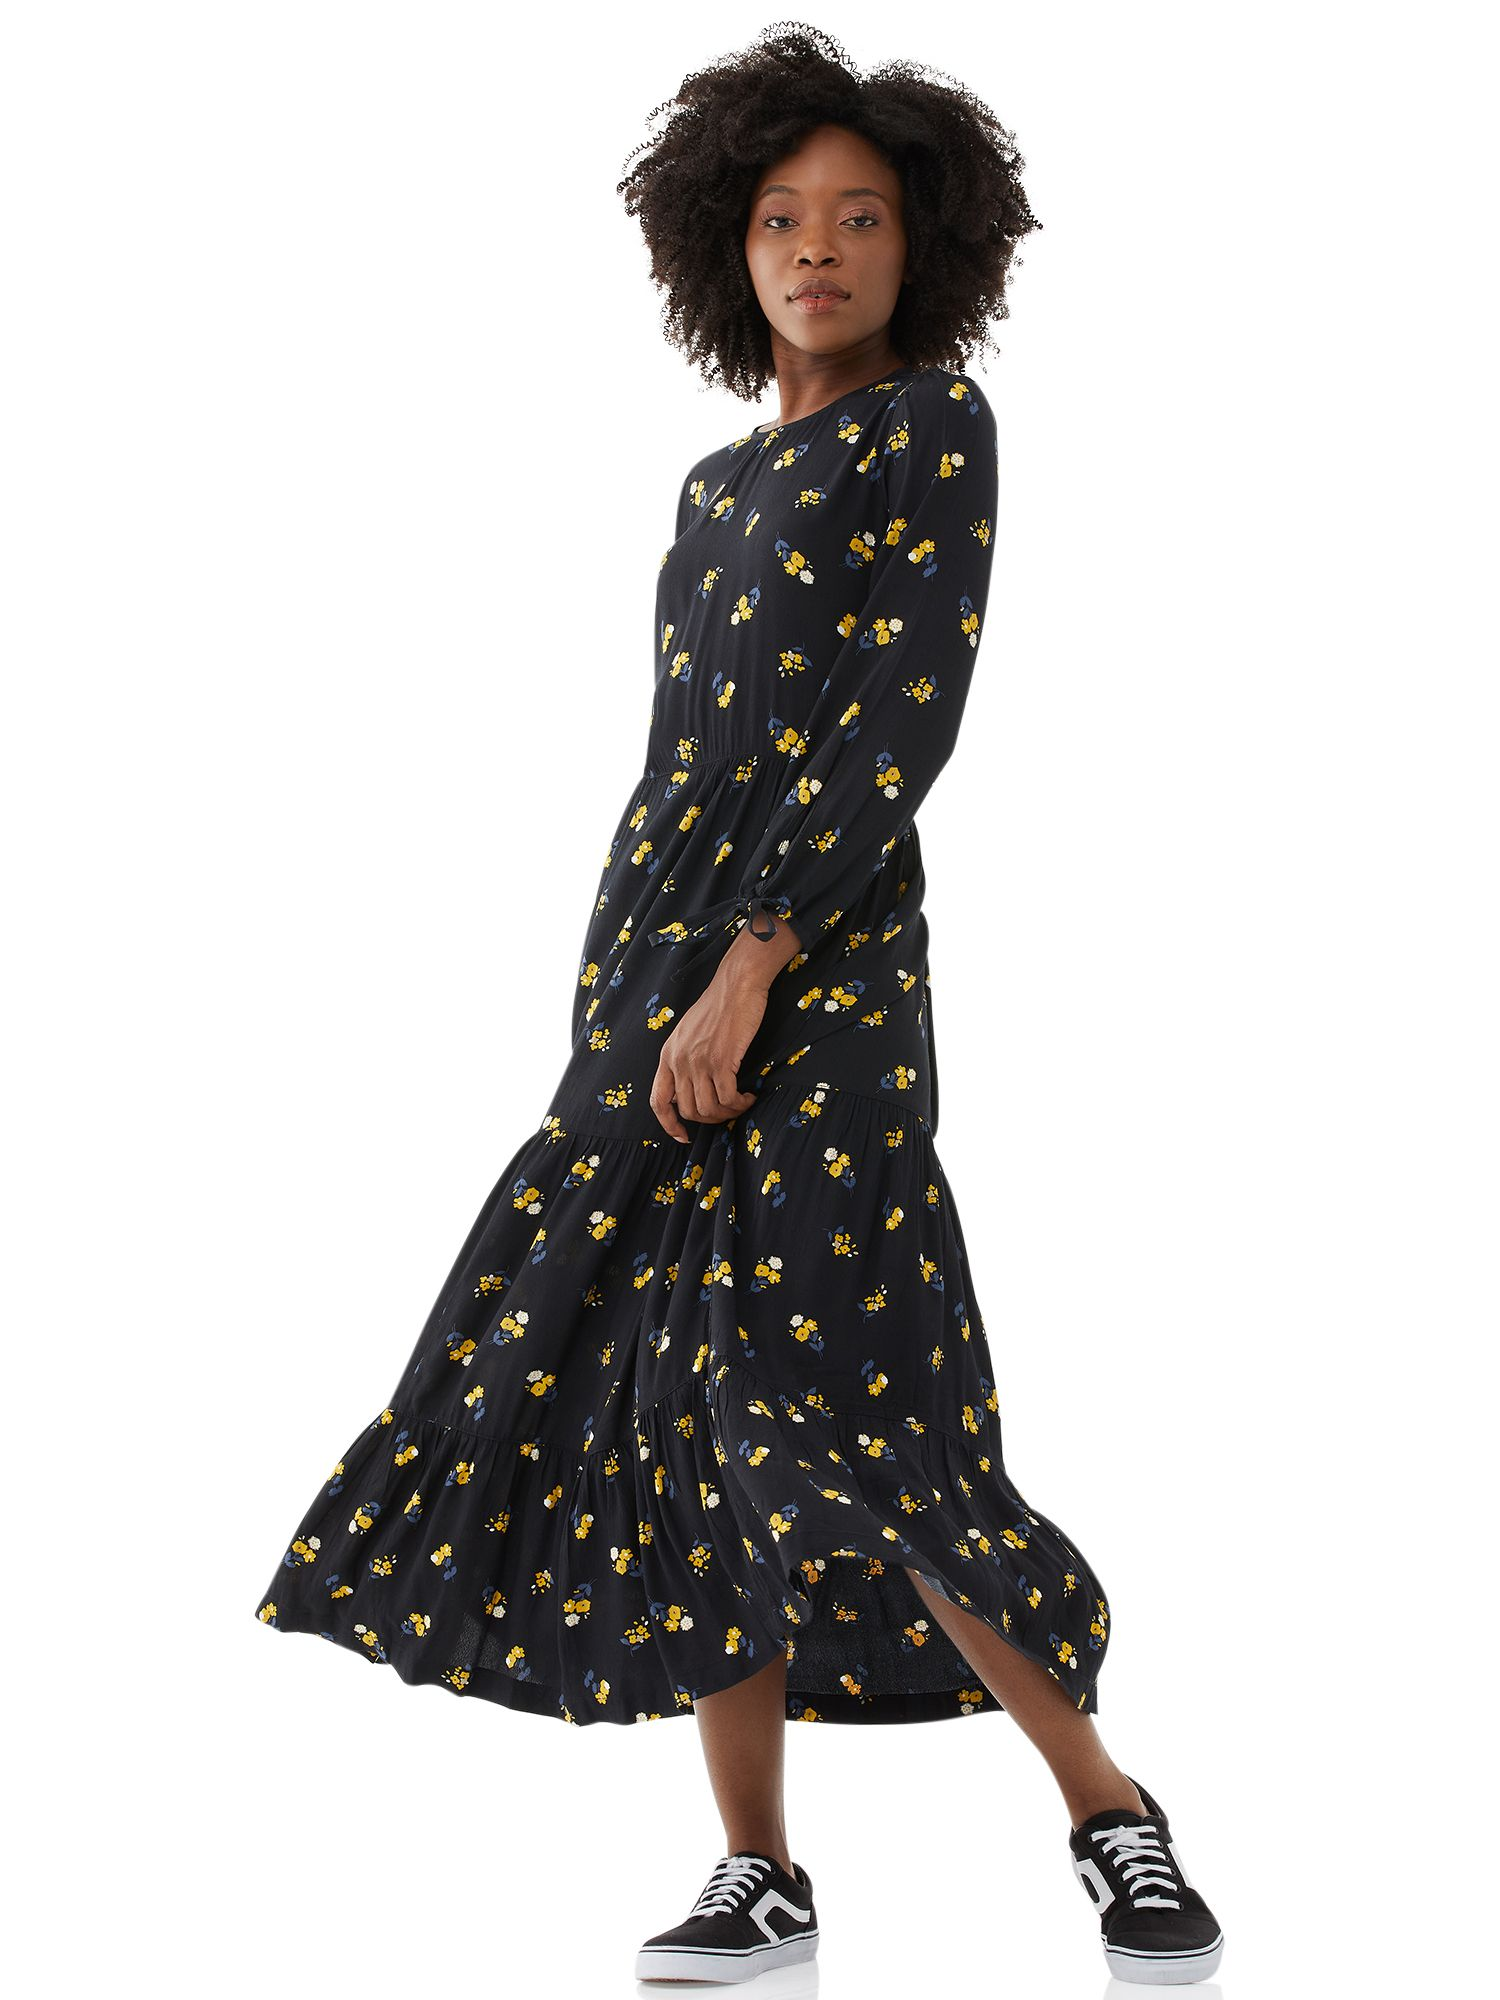 Free Assembly Free Assembly Women S Tiered Maxi Dress Walmart Com Maxi Dress Tiered Maxi Dress Floral Maxi Dress [ 2000 x 1500 Pixel ]